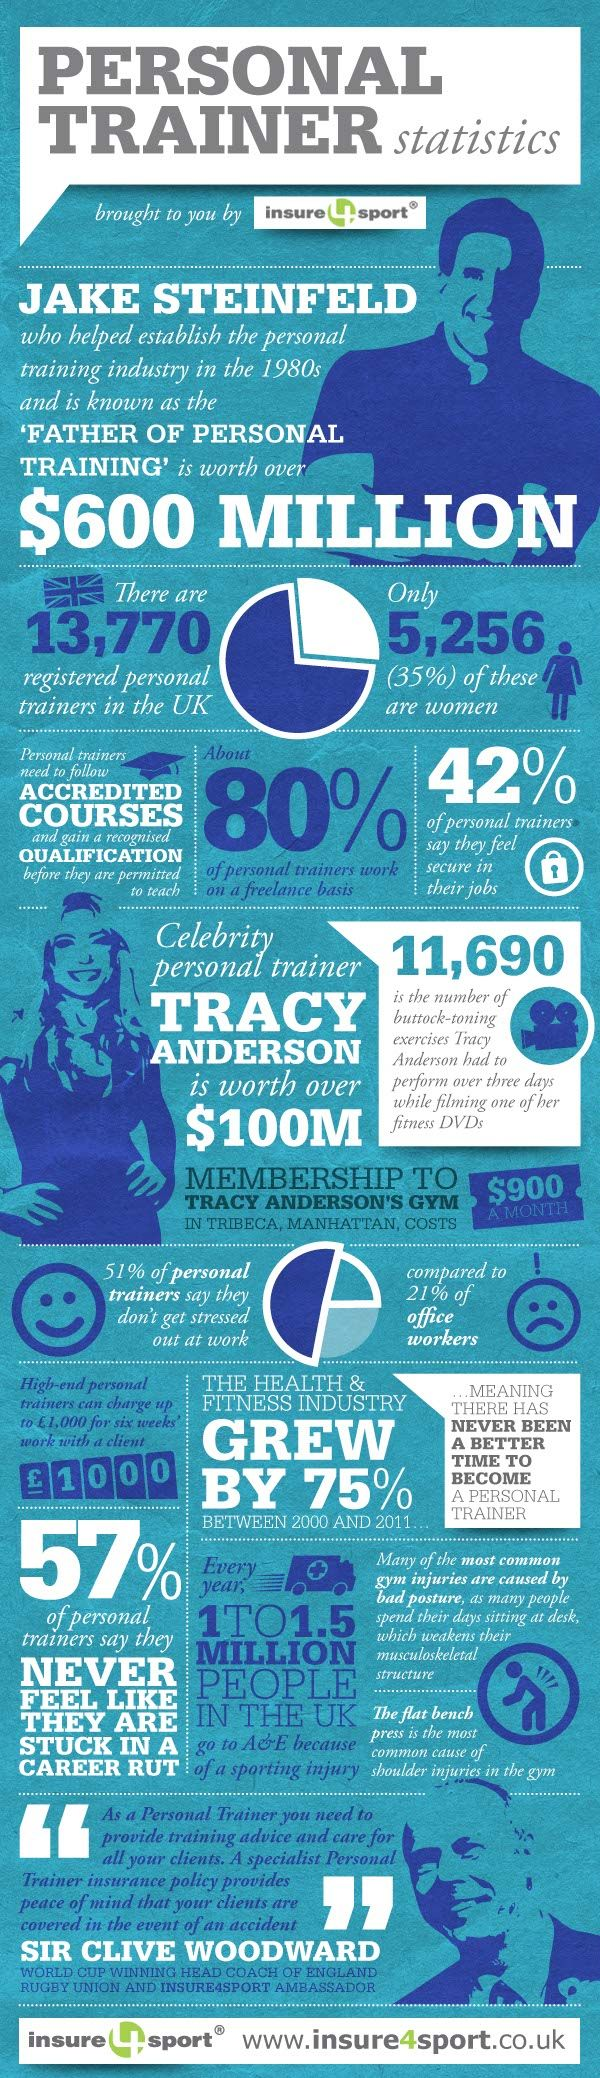 Personal Trainer Perks : Insure4Sport has launched this  infographic dishing out some facts and stats of personal trainers. After reading it will more than likely sway you to become one!  > http://infographicsmania.com/personal-trainer-perks/